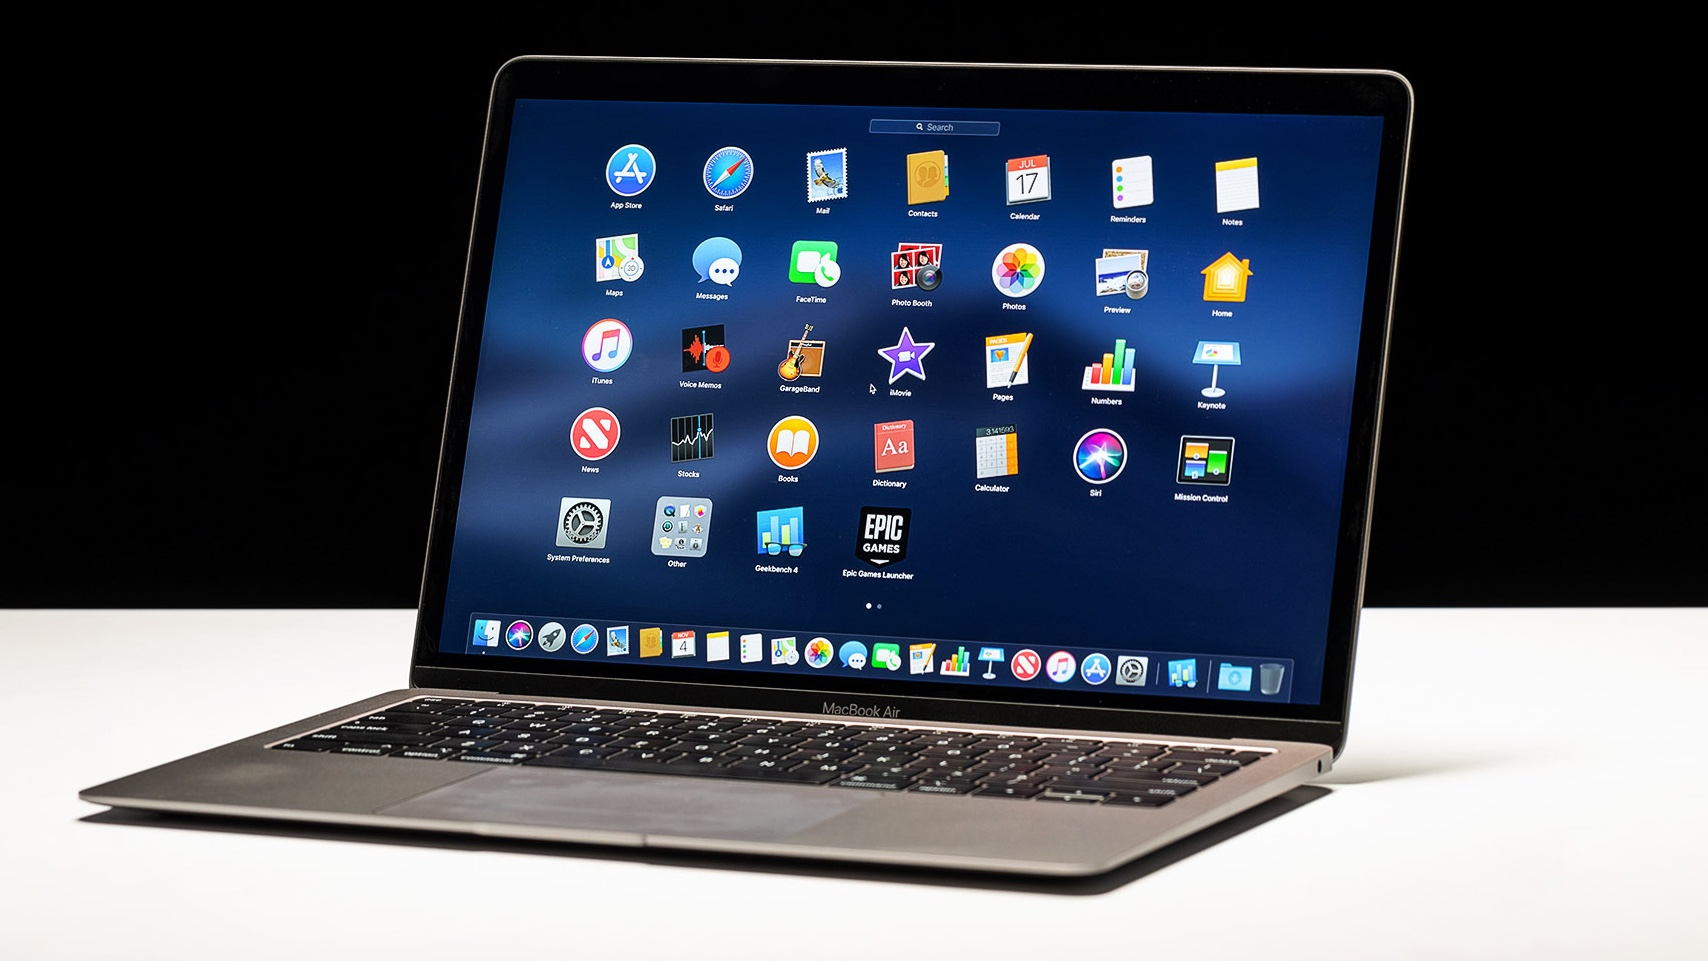 MacBook Air 2018 scherm